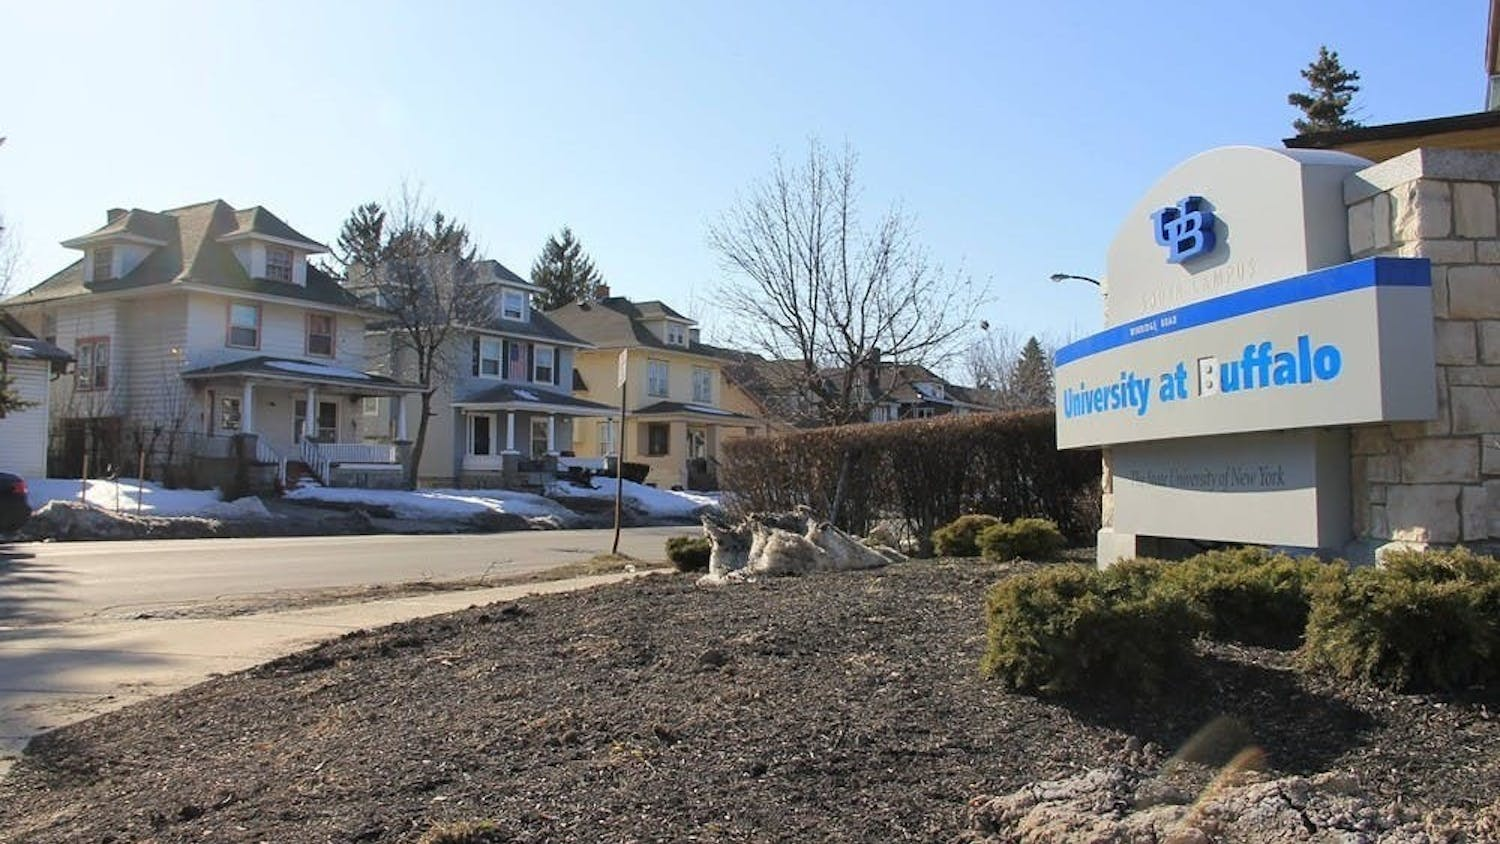 UB's South Campus will serve as a COVID vaccination site, the SUNY chancellor announced Tuesday.